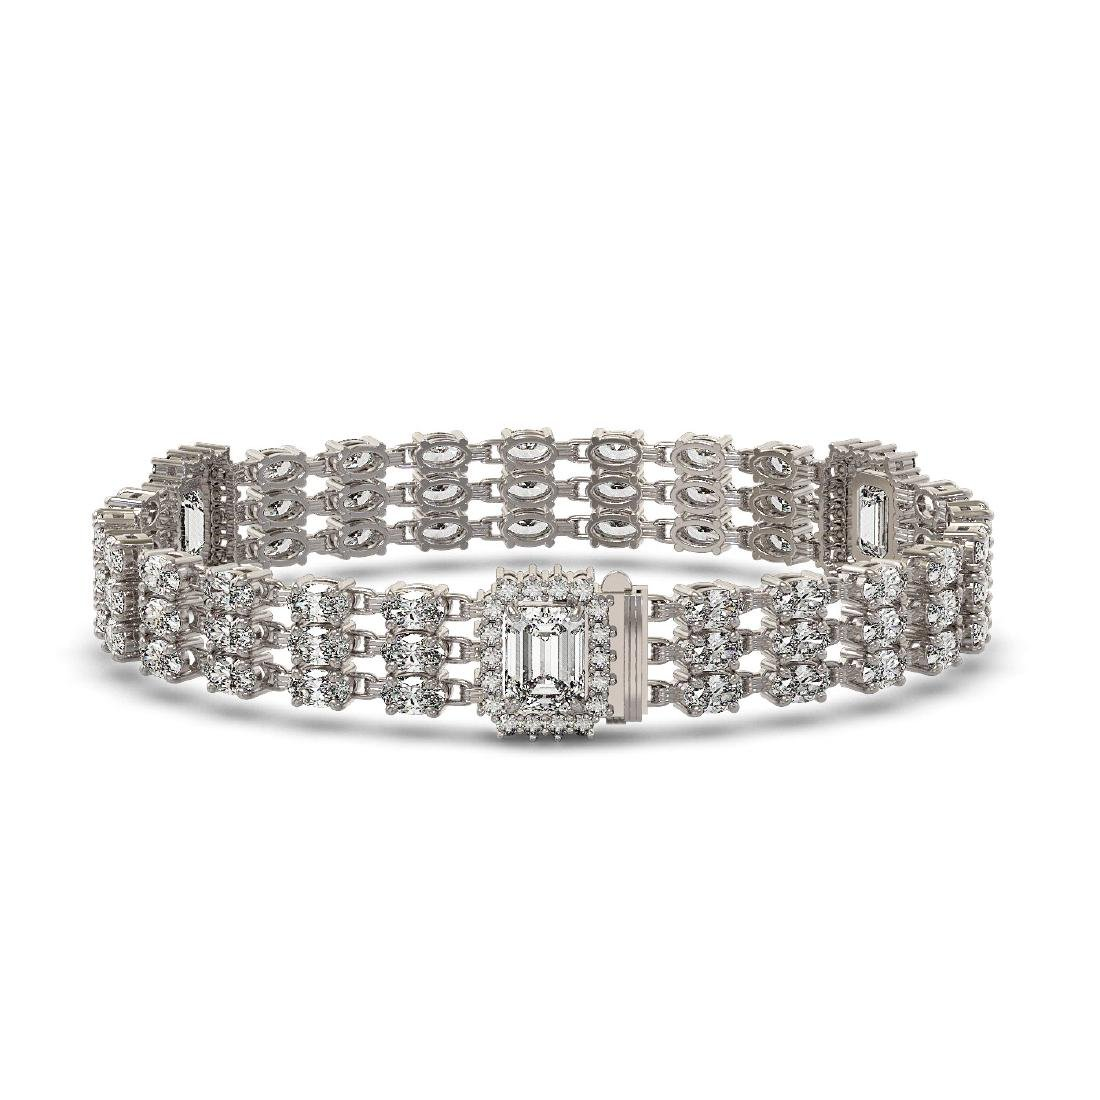 18.96 ctw Emerald Cut & Oval Diamond Bracelet 18K White